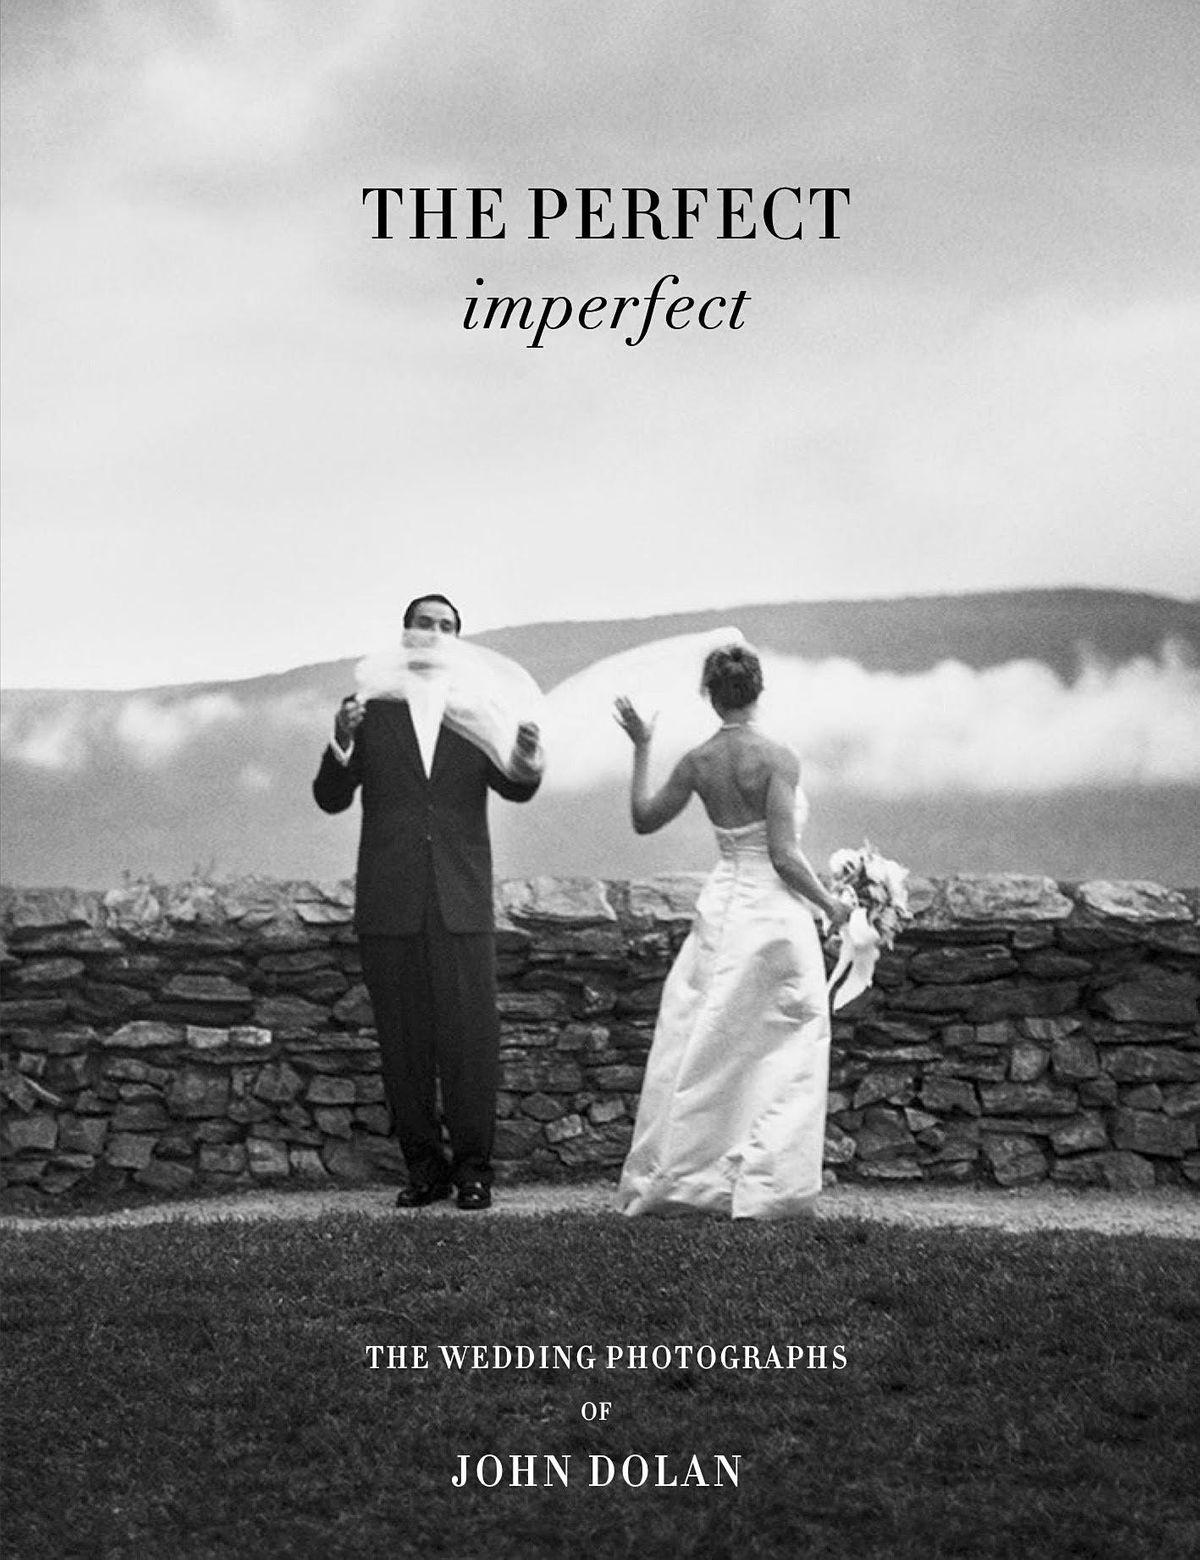 JOHN DOLAN: THE PERFECT IMPERFECT - THE WEDDING PHOTOGRAPHS - IN PERSON EVE